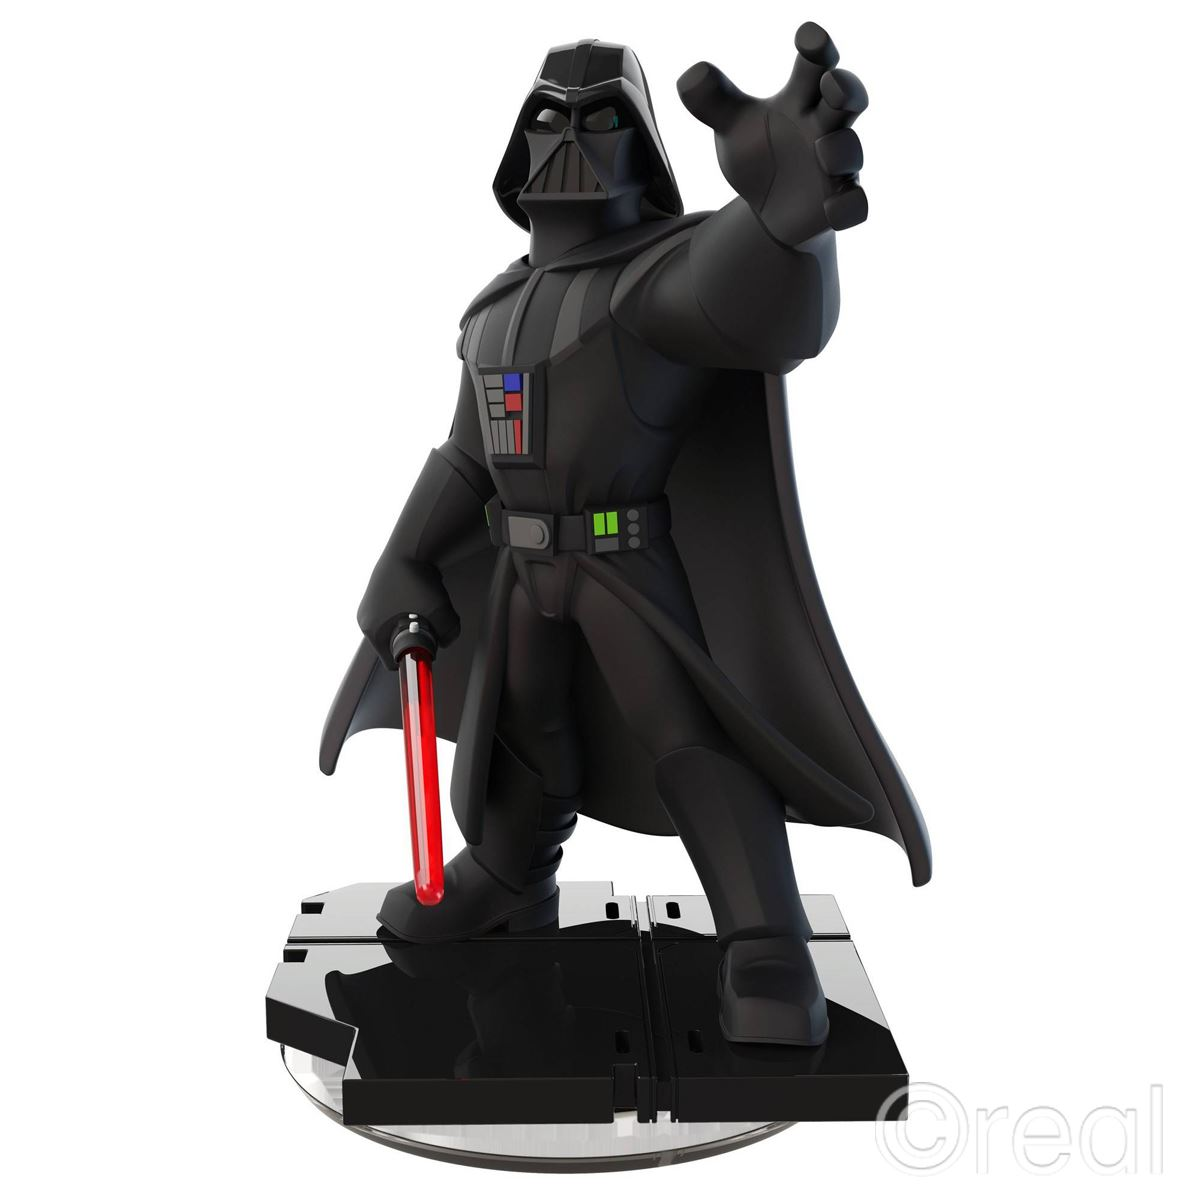 New-Star-Wars-Disney-Infinity-3-0-Figures-Darth-Vader-Han-Solo-Yoda-Official